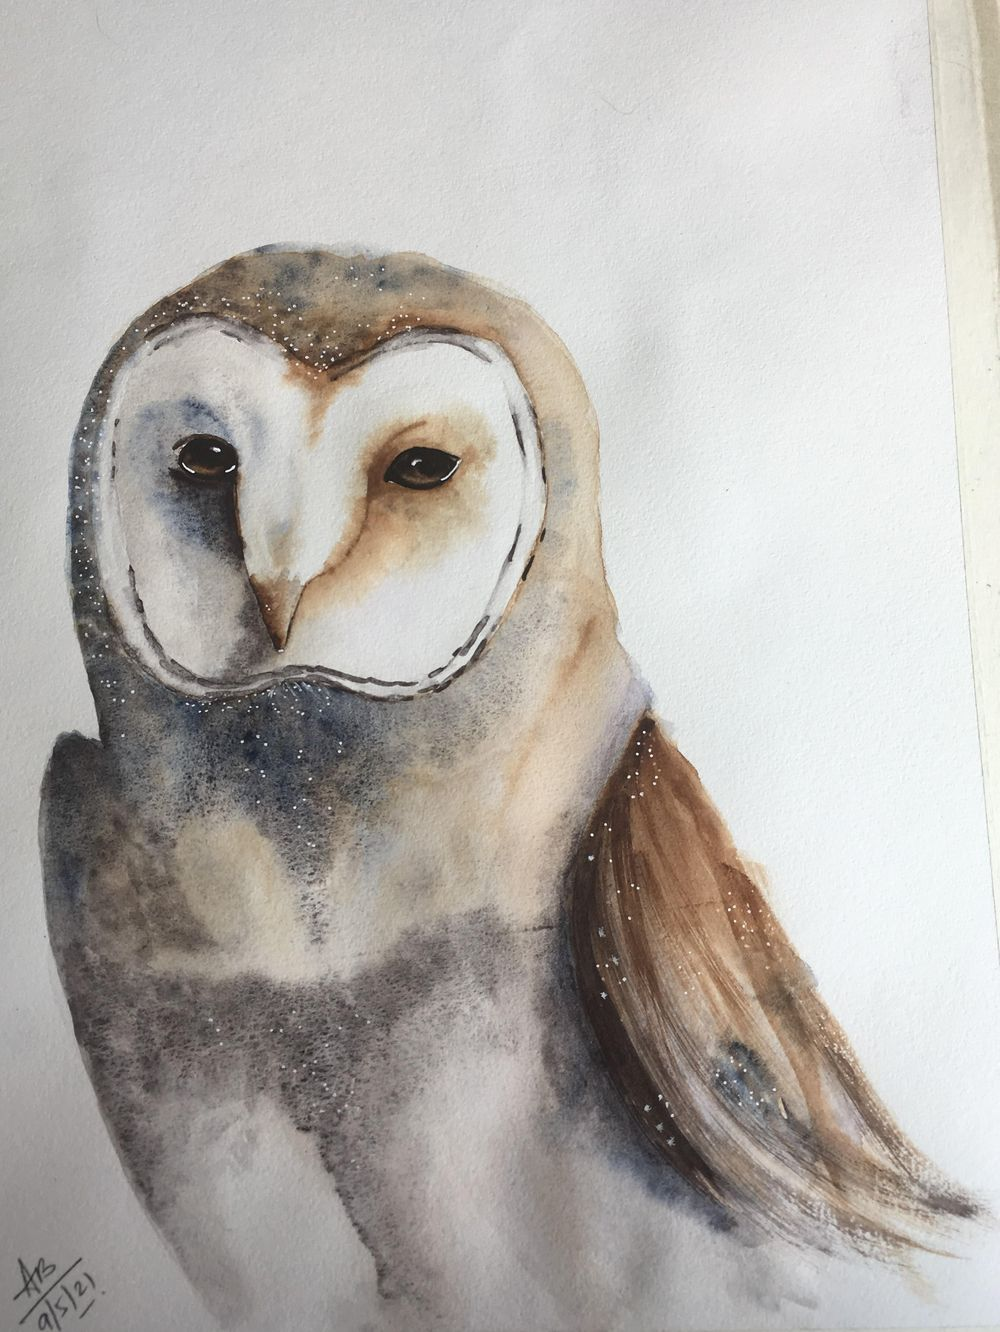 Barn Owl - image 1 - student project